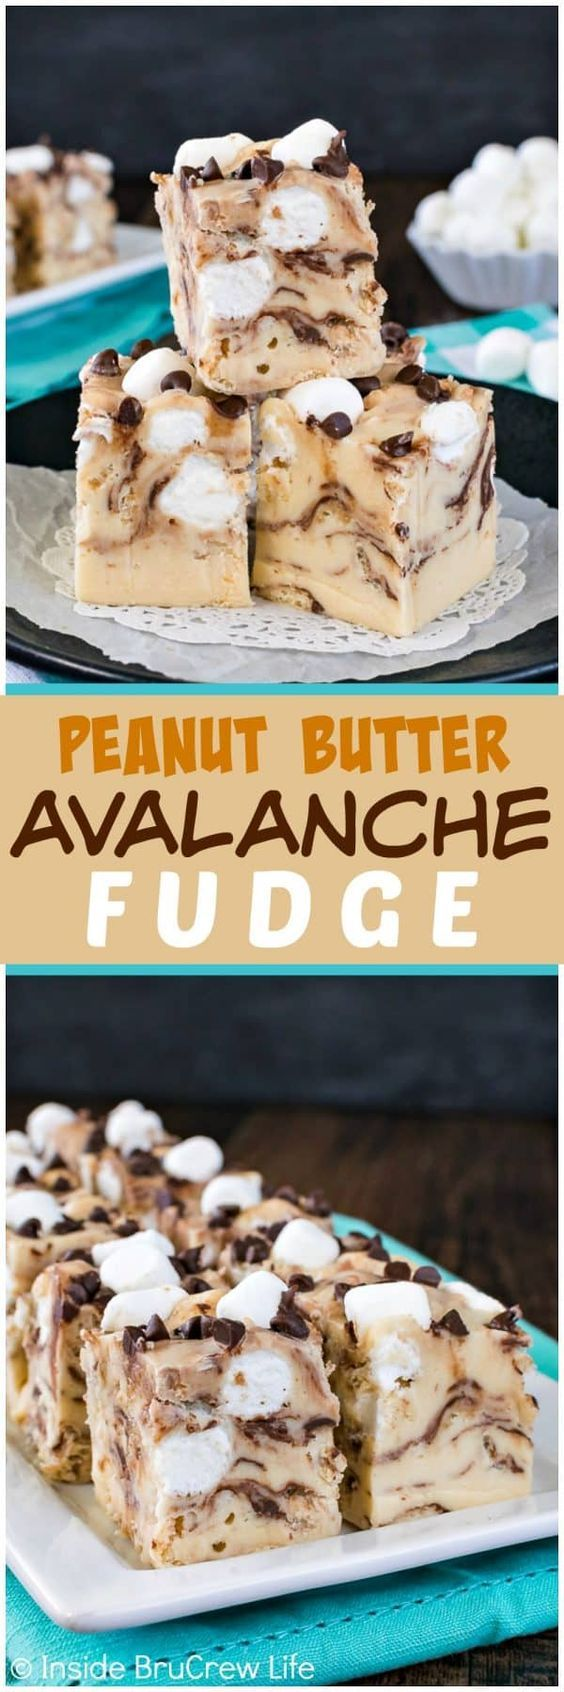 Peanut Butter Avalanche Fudge - this creamy no bake peanut butter fudge is loaded with chocolate, marshmallows, and cereal. Easy recipe to make for holiday parties and cookie exchanges! #fudge #peanutbutter #nobake #holiday #christmas